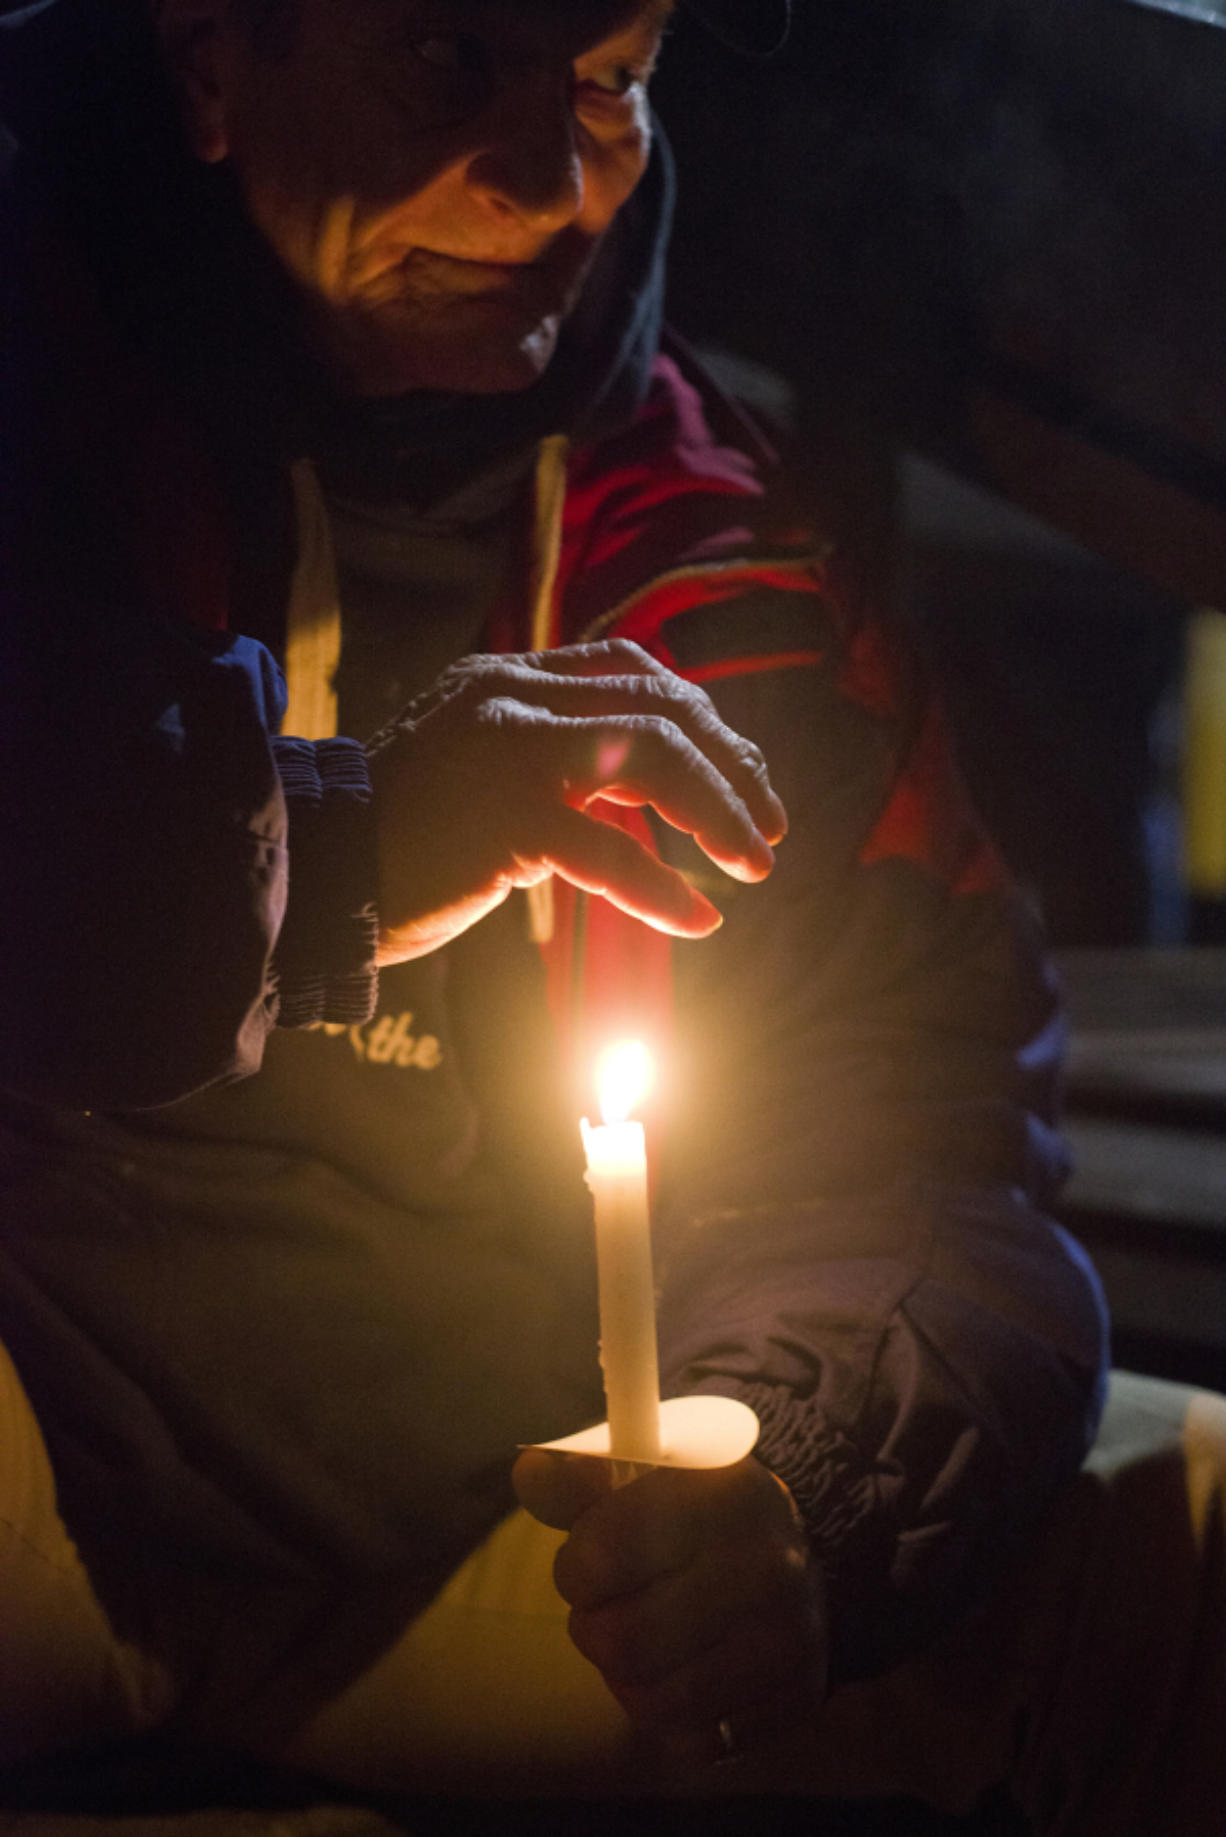 Robert Langford warms his hand with a candle during a homeless memorial service Wednesday night at St. Paul Lutheran Church in Vancouver.